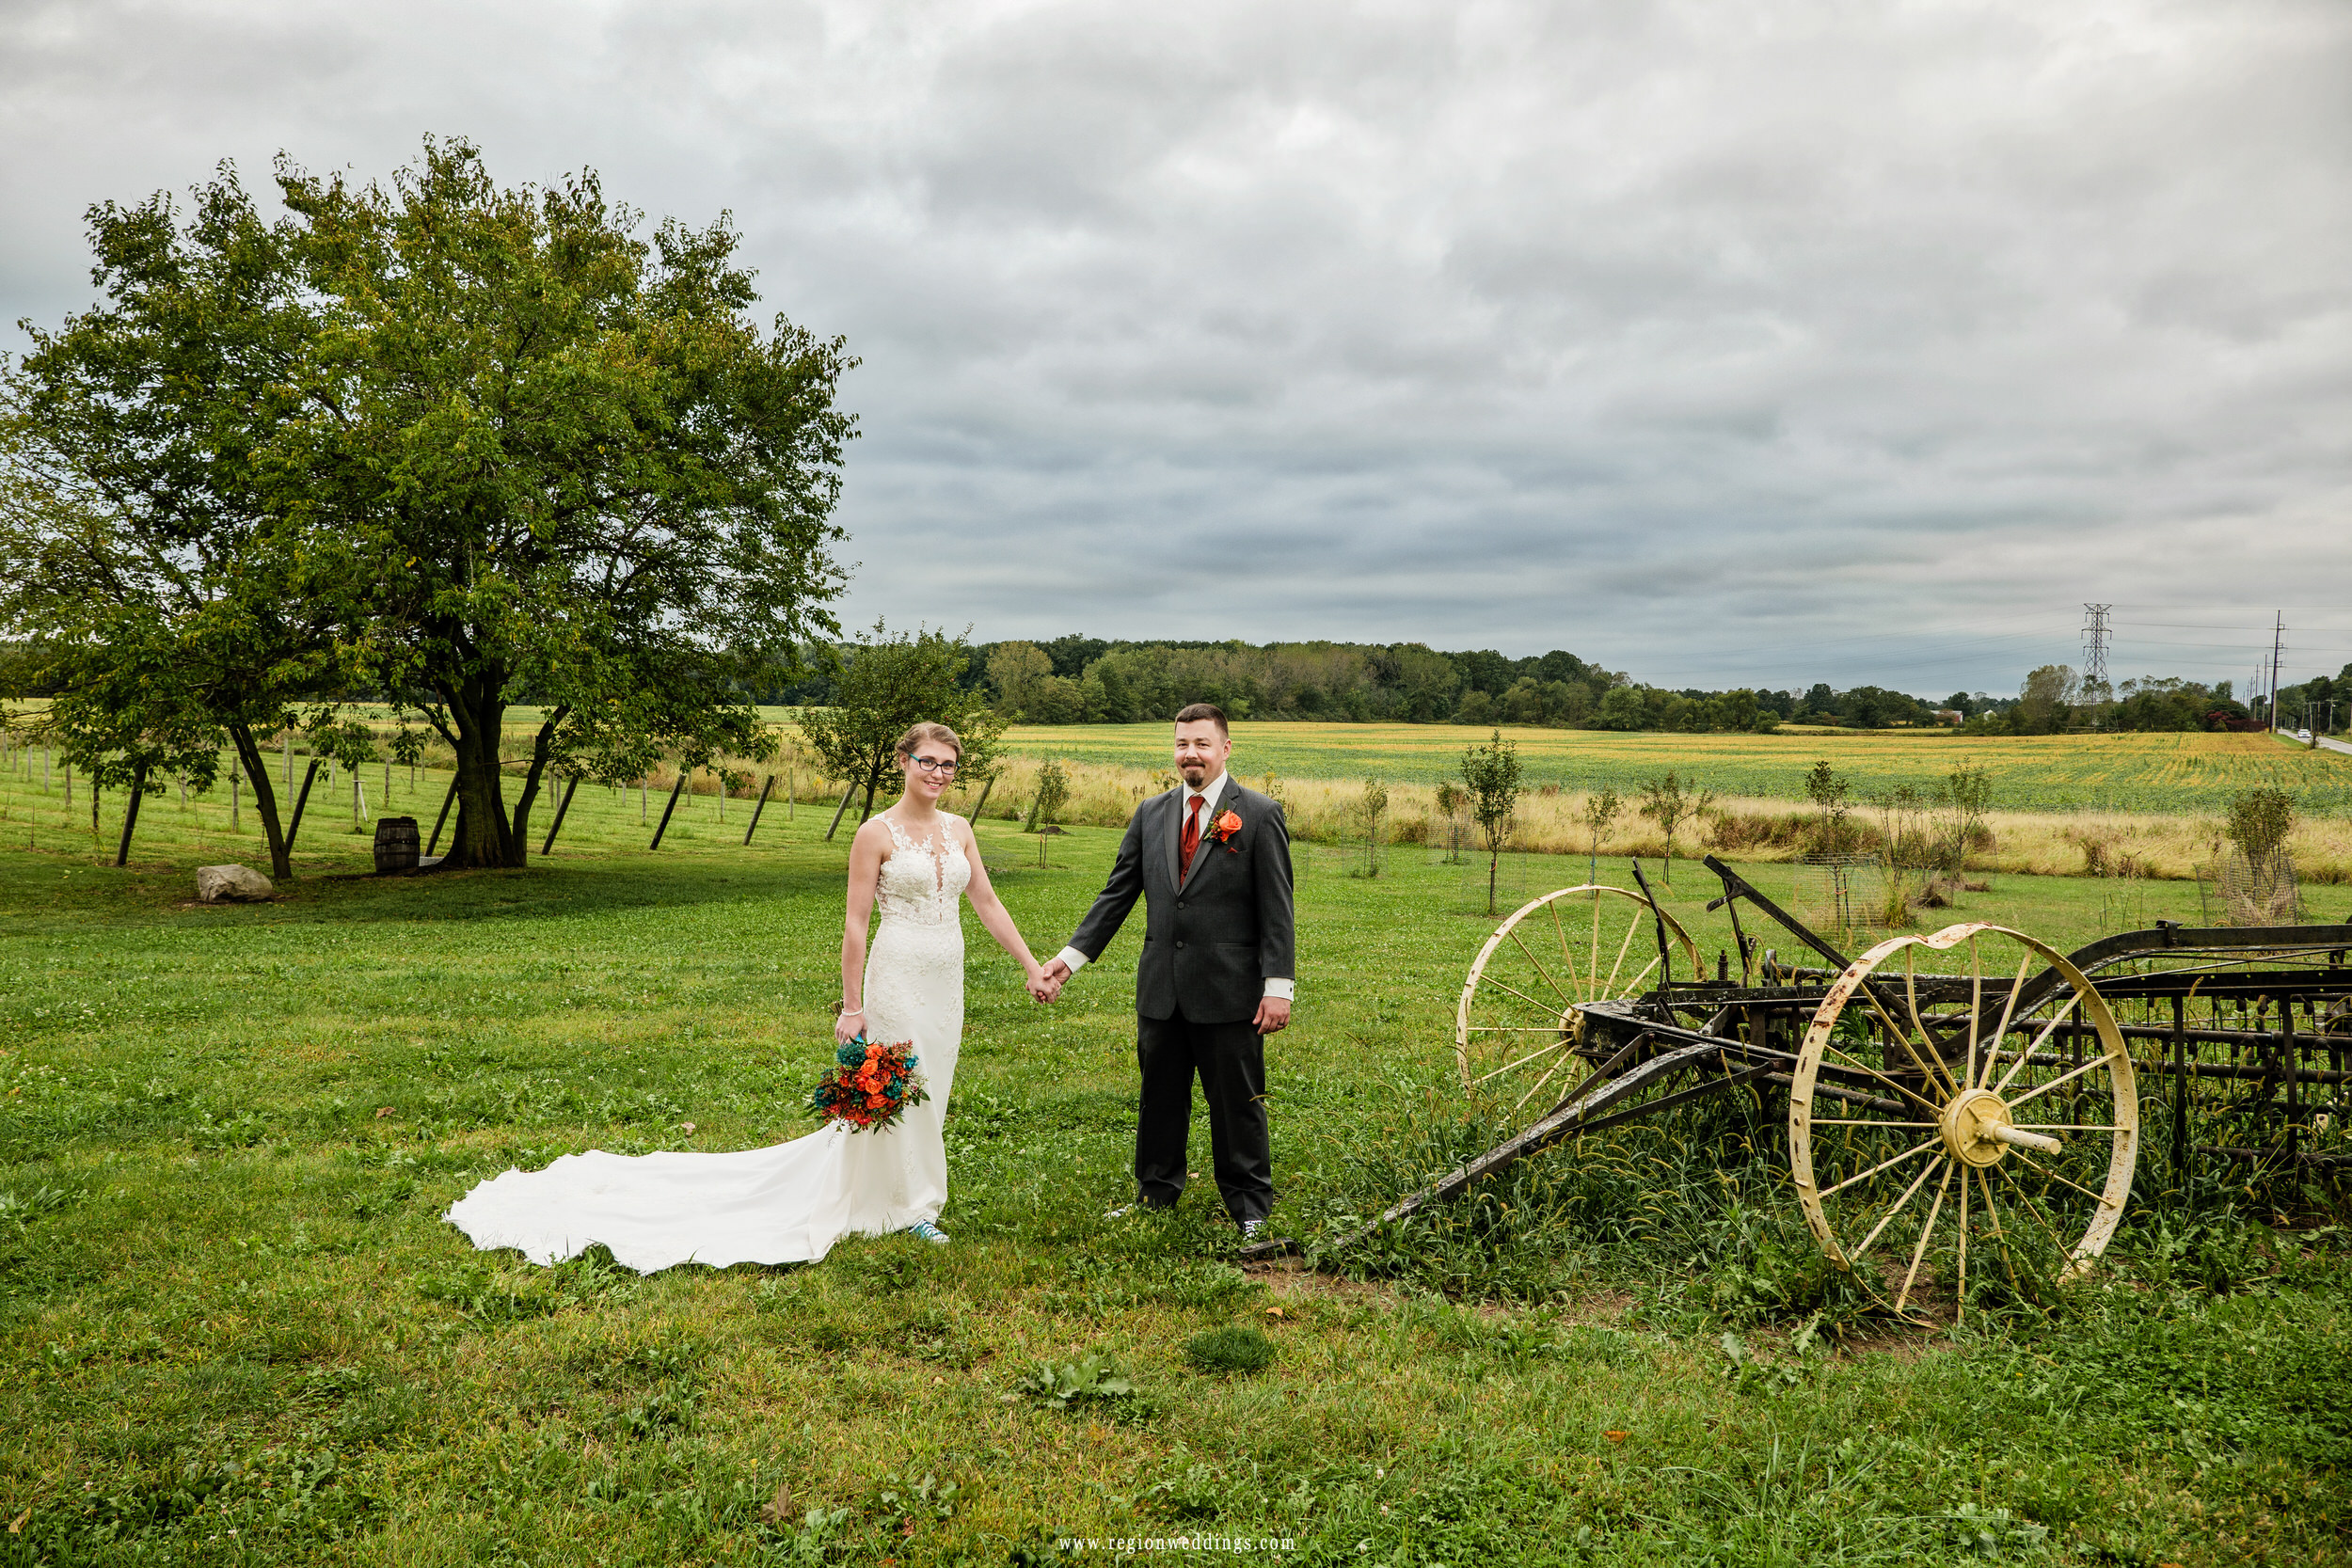 Indiana farmland surrounds the newly married couple.